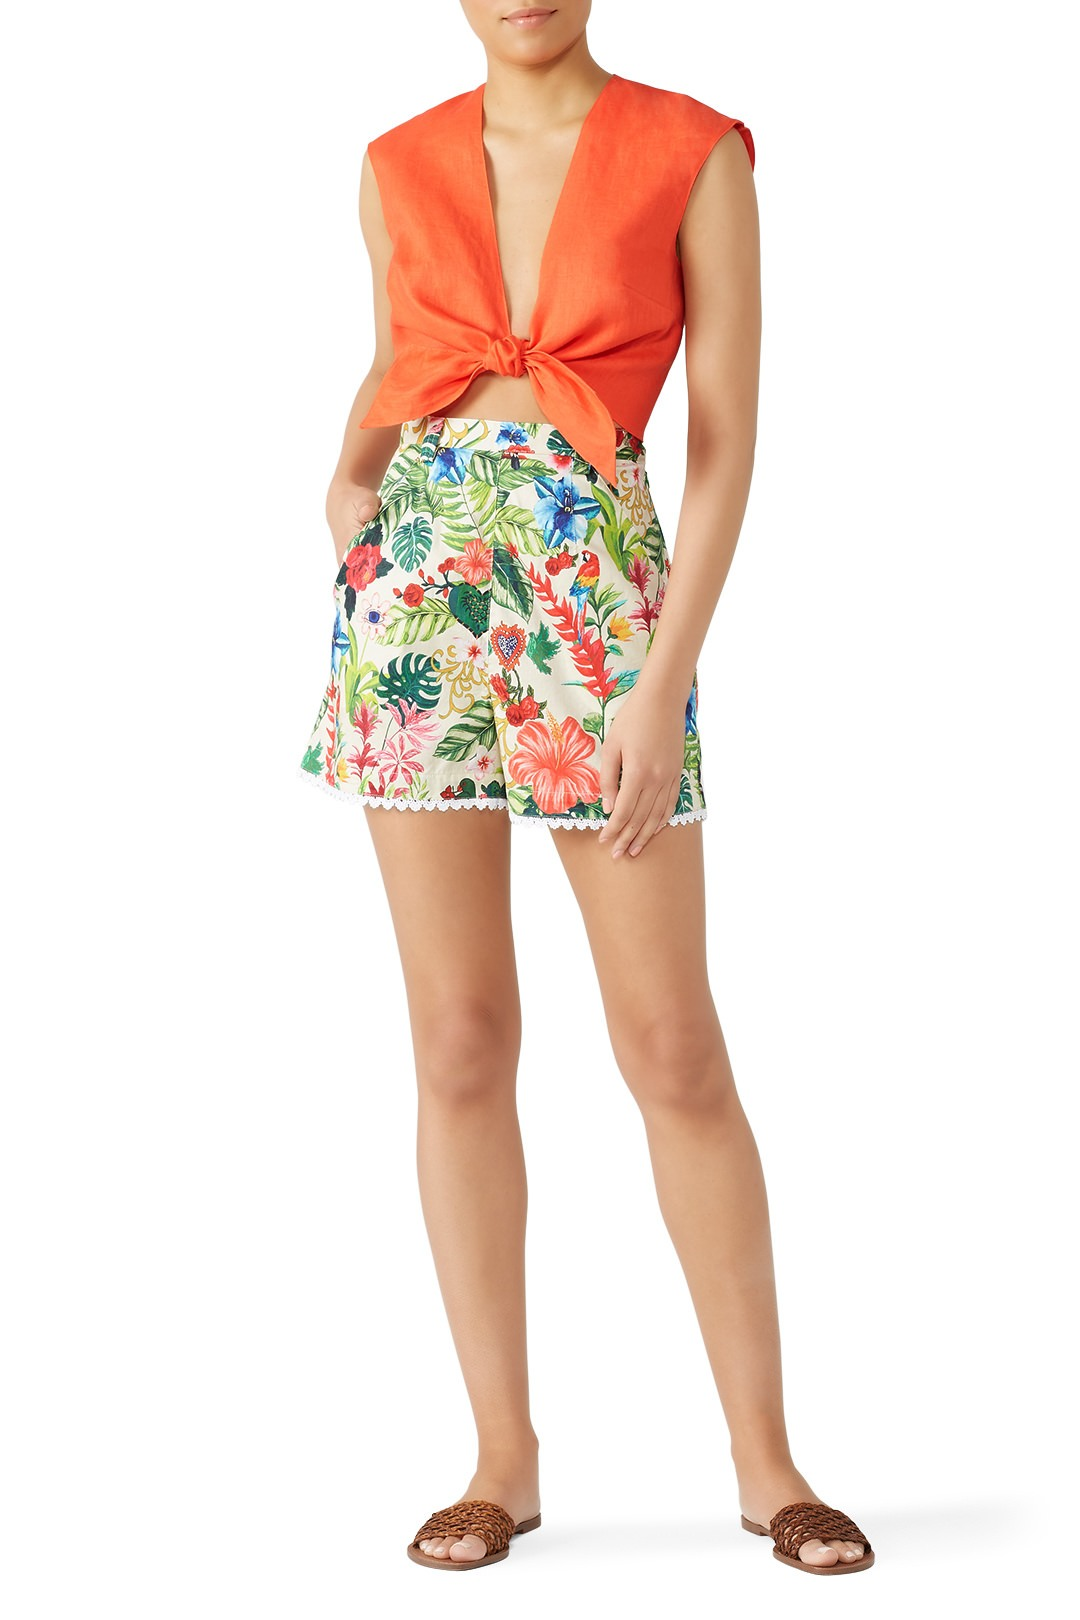 Miguelina Joone Shorts - These are fun…but maybe more for summer. Oh well, thinking ahead.